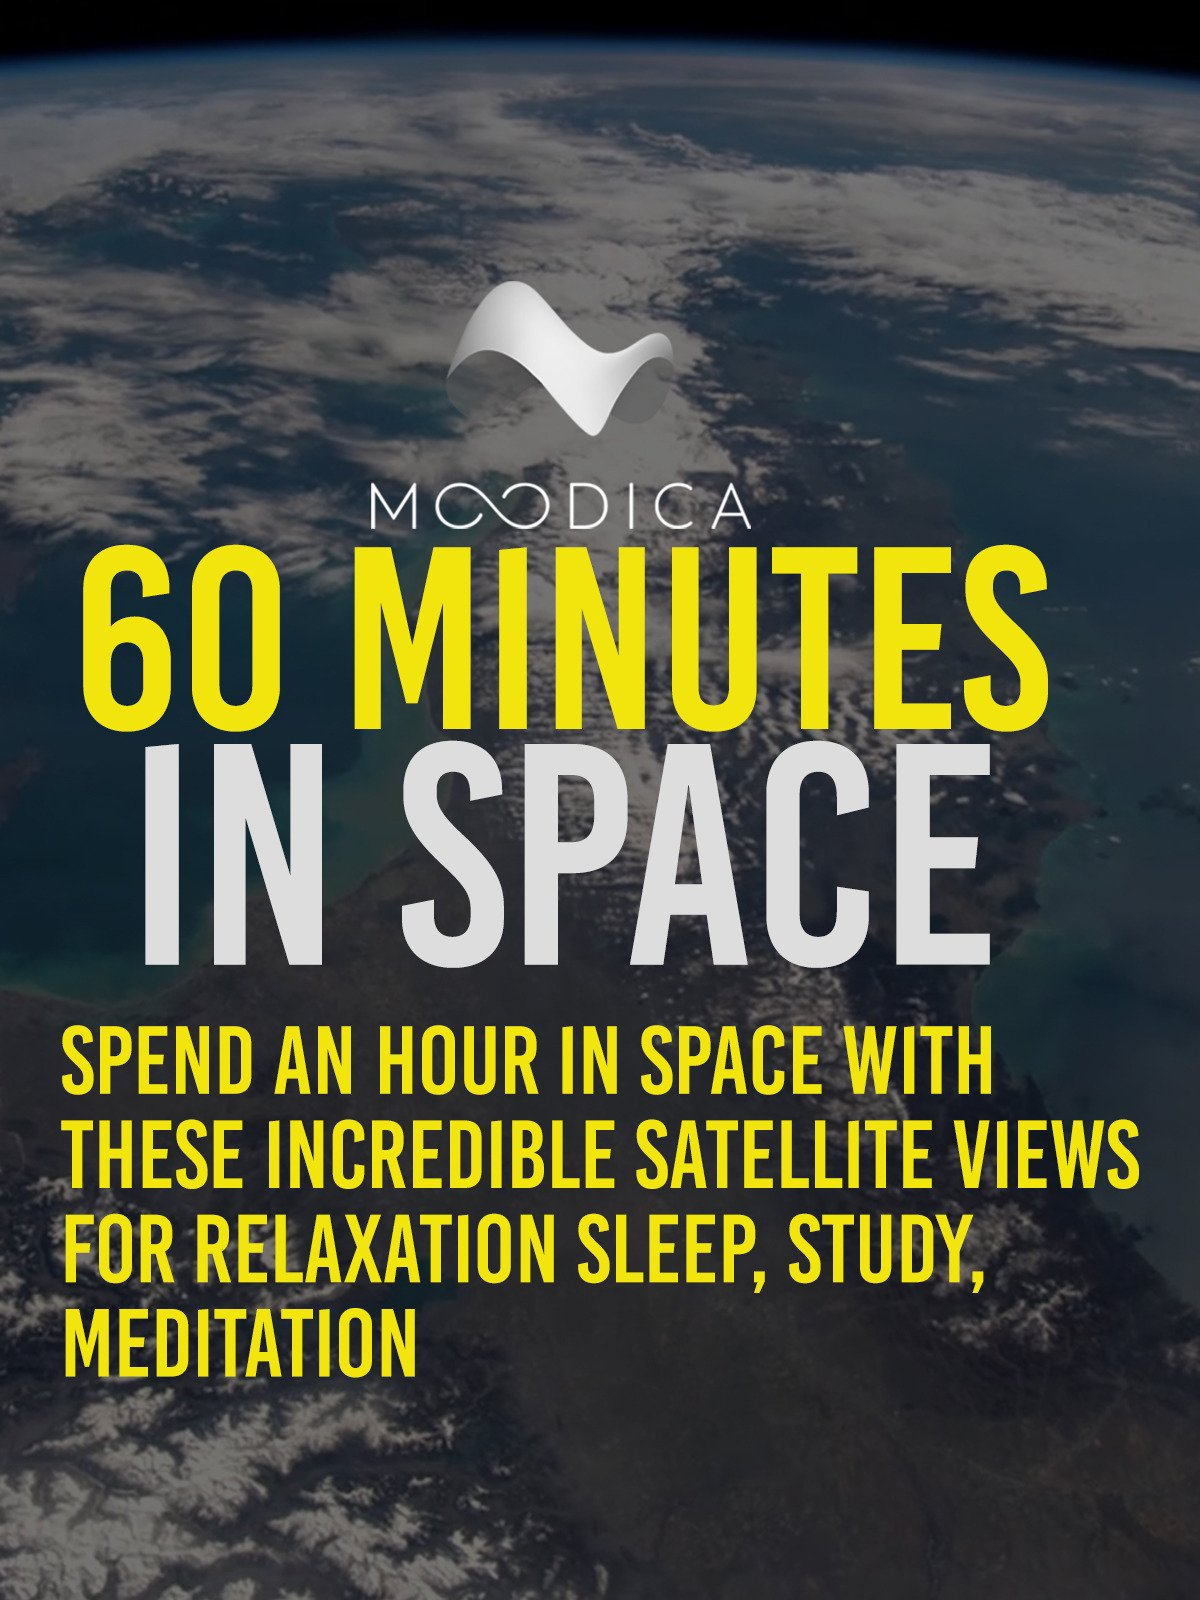 60 Minutes In Space: Spend An Hour In Space With These Incredible Satellite Views For Relaxation Sleep, Study, Meditation